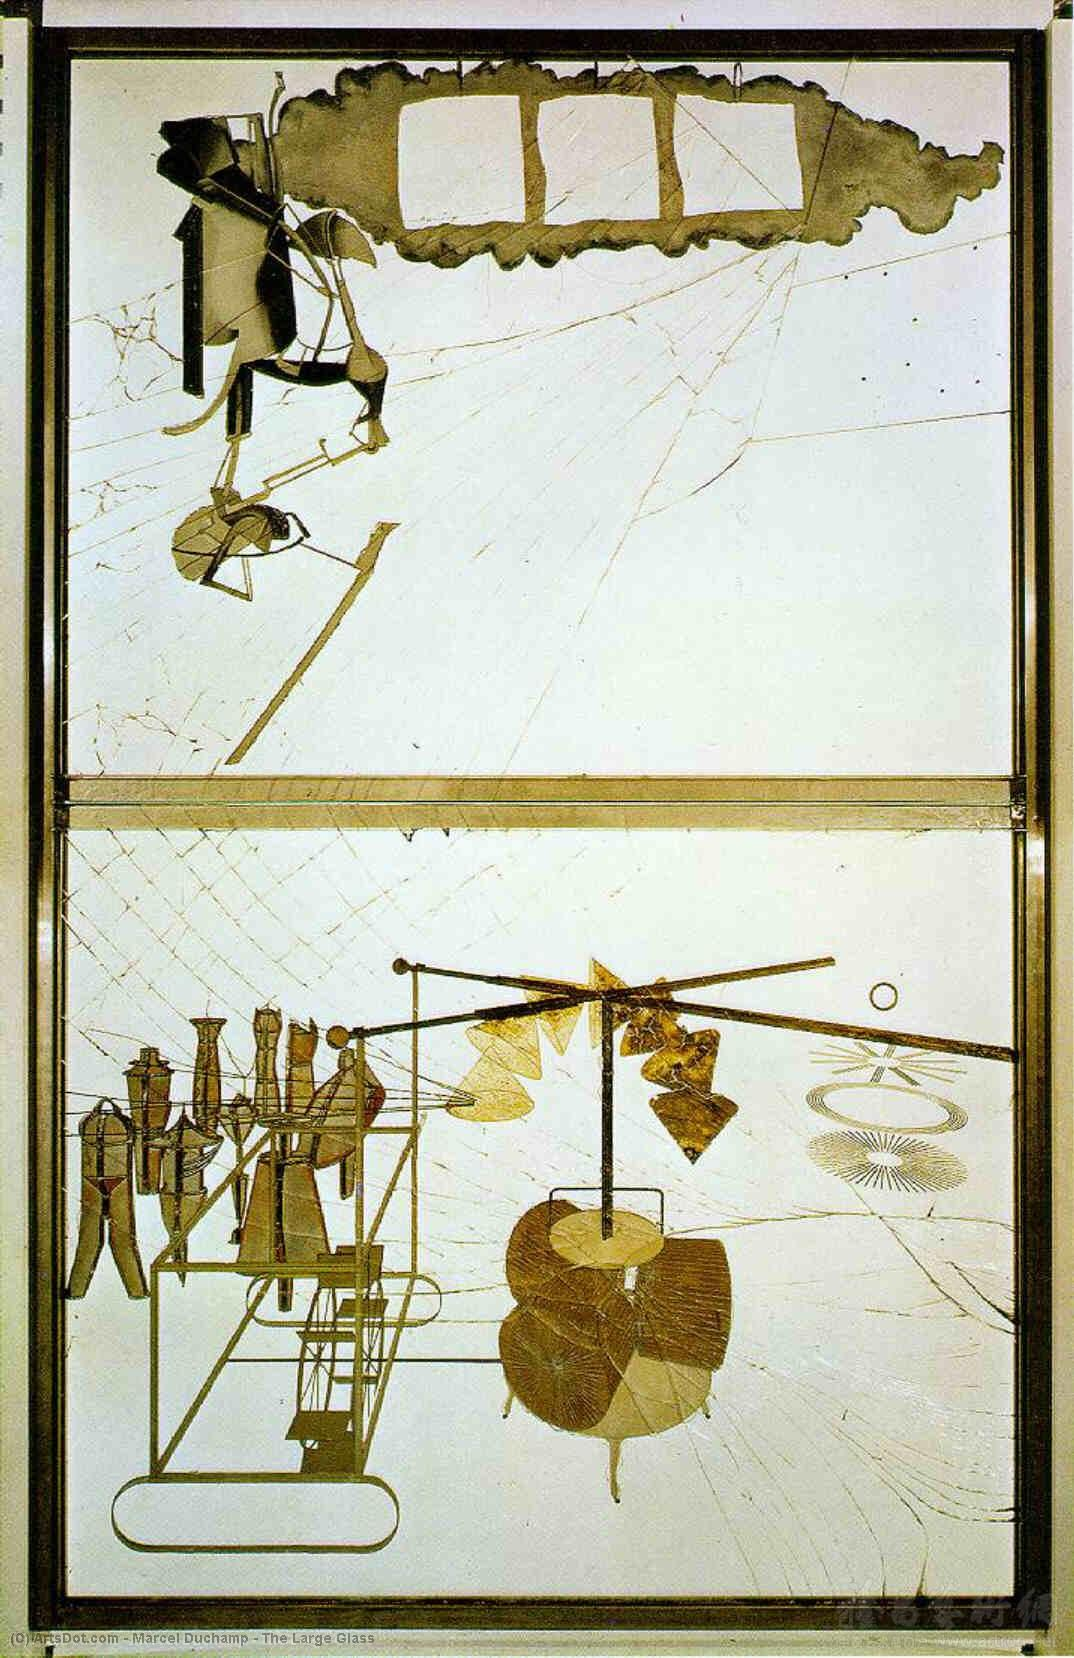 Wikioo.org - The Encyclopedia of Fine Arts - Painting, Artwork by Marcel Duchamp - The Large Glass